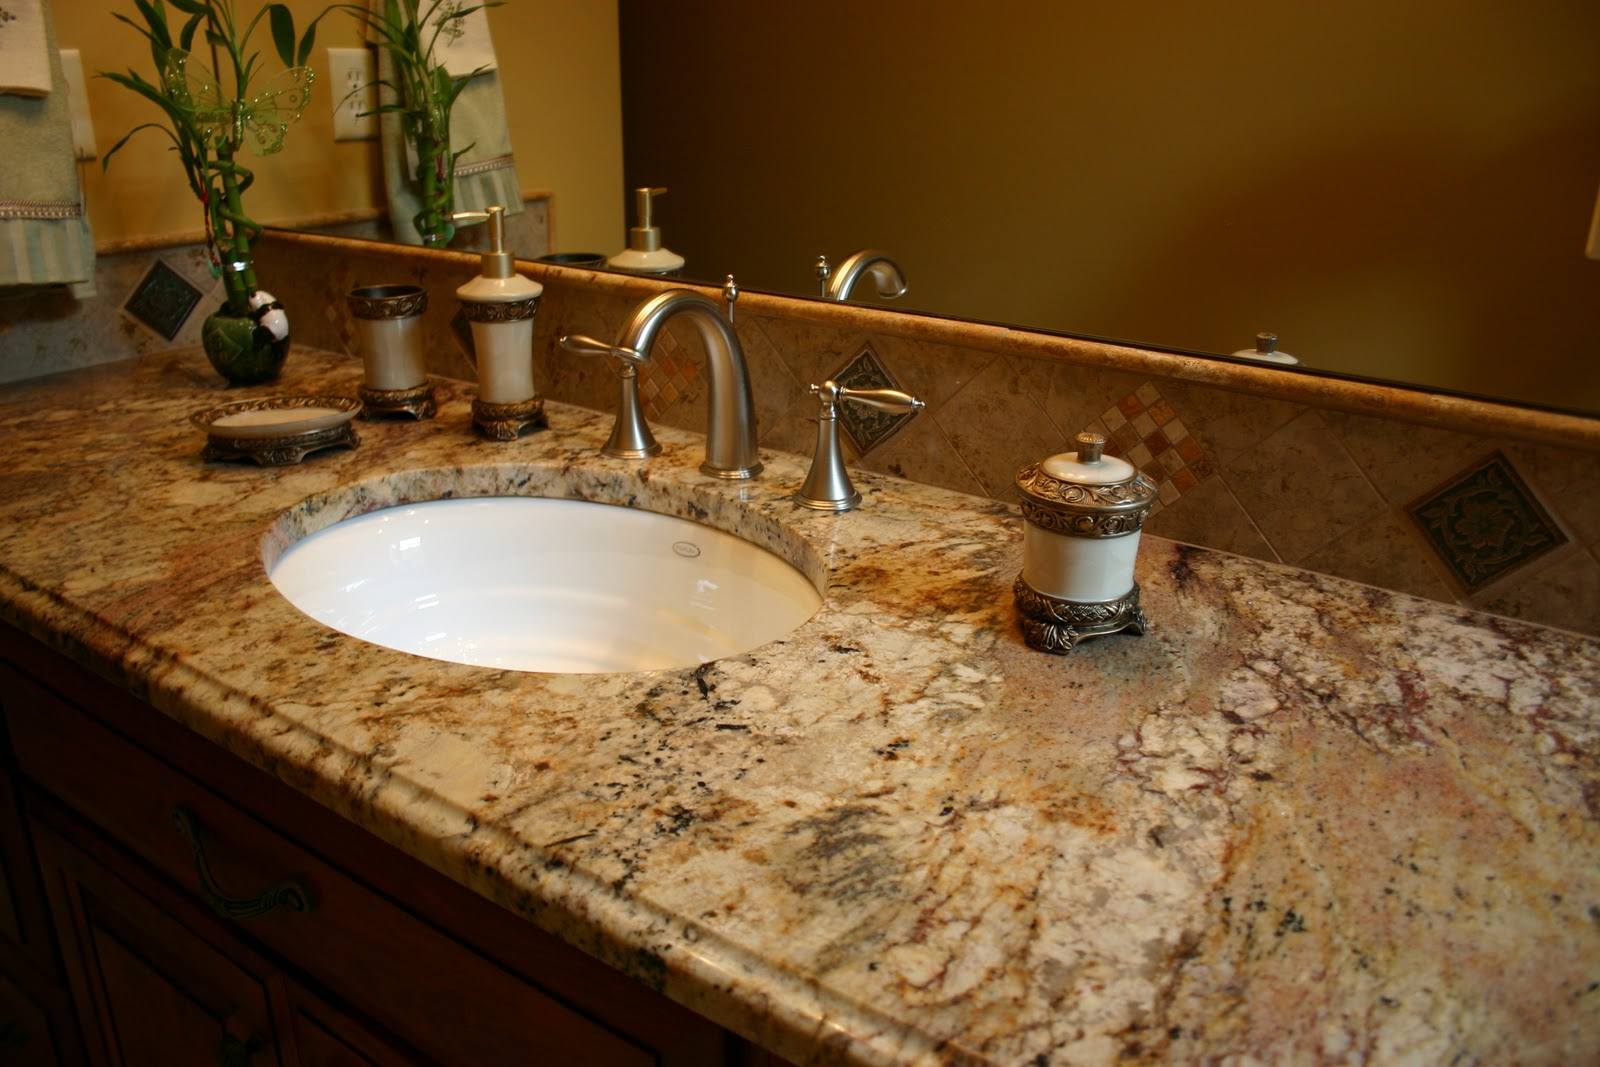 The granite gurus typhoon bordeaux granite bath from mgs for 3 4 inch granite countertops